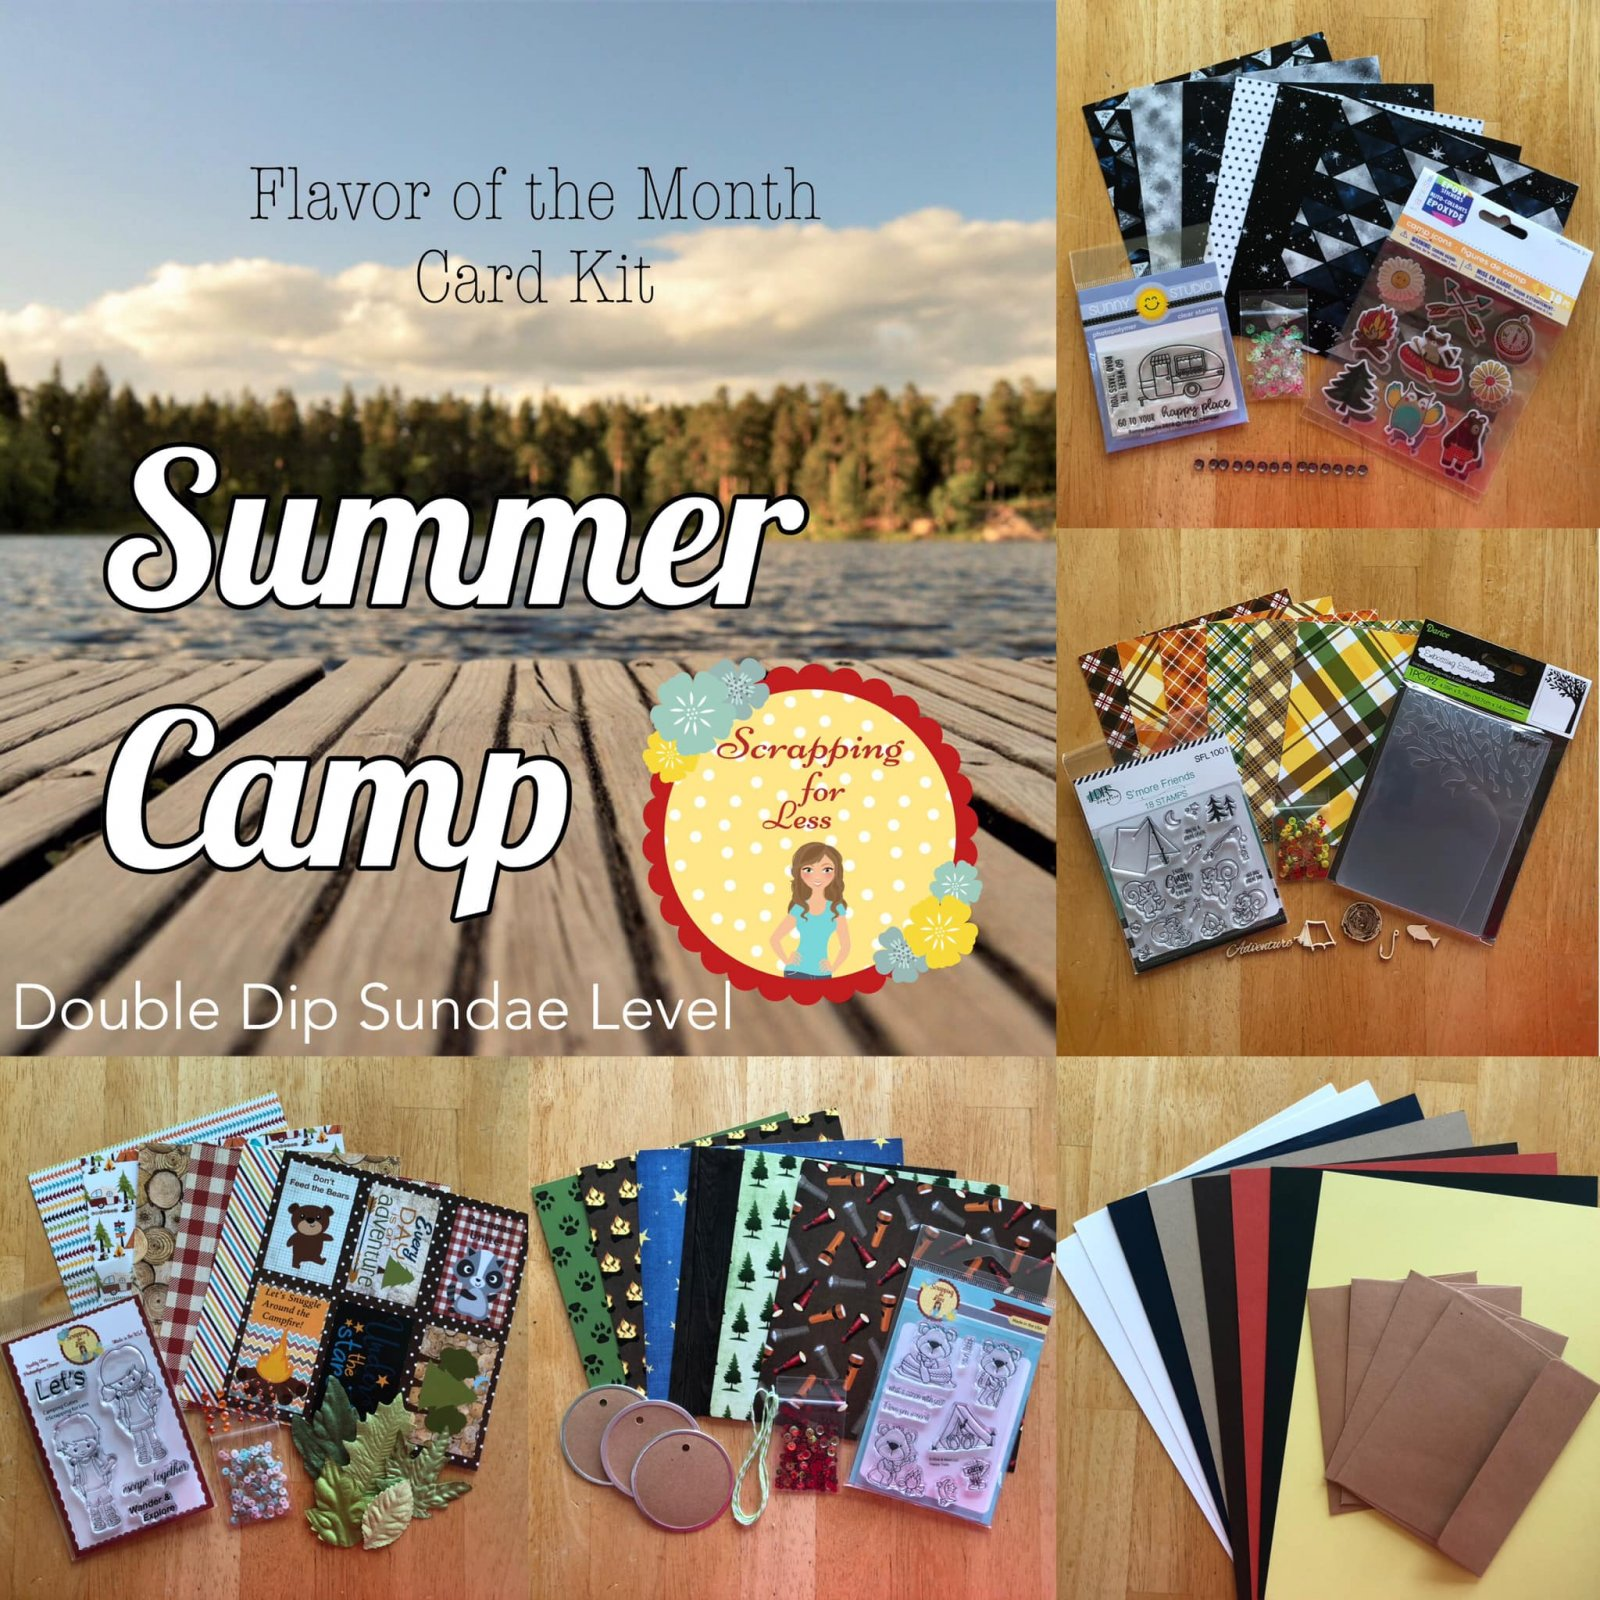 July 2019 Double Dip Flavor of the Month Summer Camp